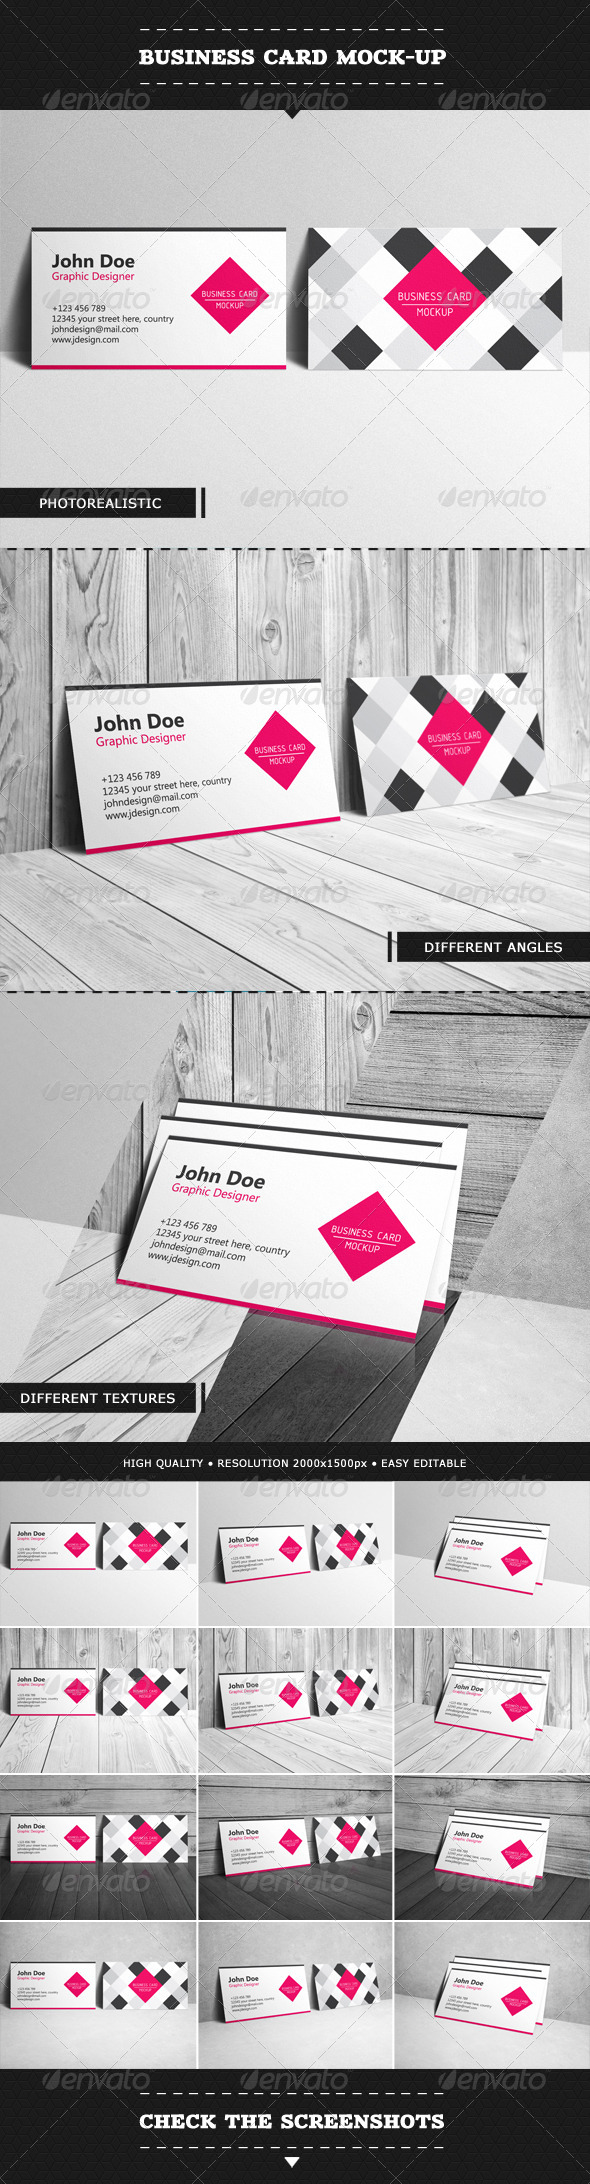 GraphicRiver Business Card Mock-up 6508762